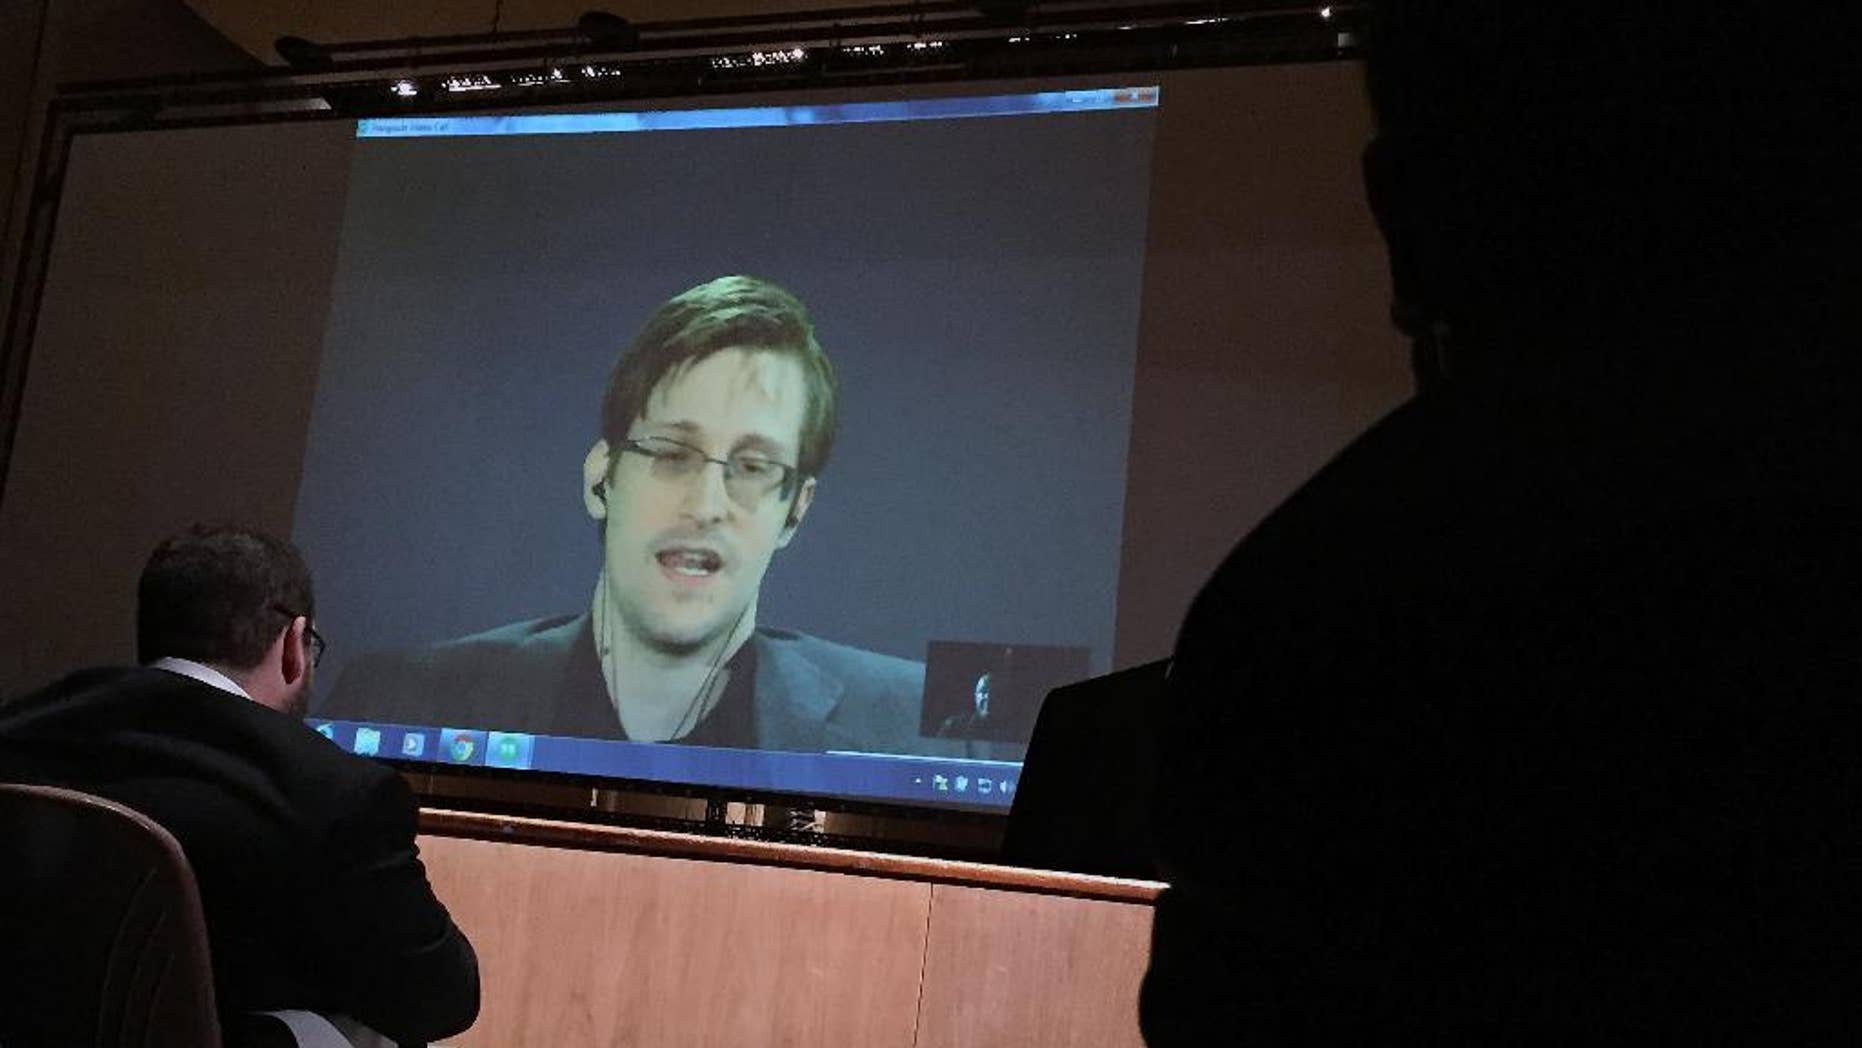 In this photo taken Feb. 17, 2016, former National Security Agency contractor Edward Snowden, center speaks via video conference to people in the Johns Hopkins University auditorium in Baltimore. The Senate on Wednesday, June 22, 2016, blocked an expansion of the government's power to investigate suspected terrorists, a victory for civil libertarians and privacy advocates emboldened after a National Security Agency contractor's revelations forced changes in how the communications of Americans are monitored.  (AP Photo/Juliet Linderman)